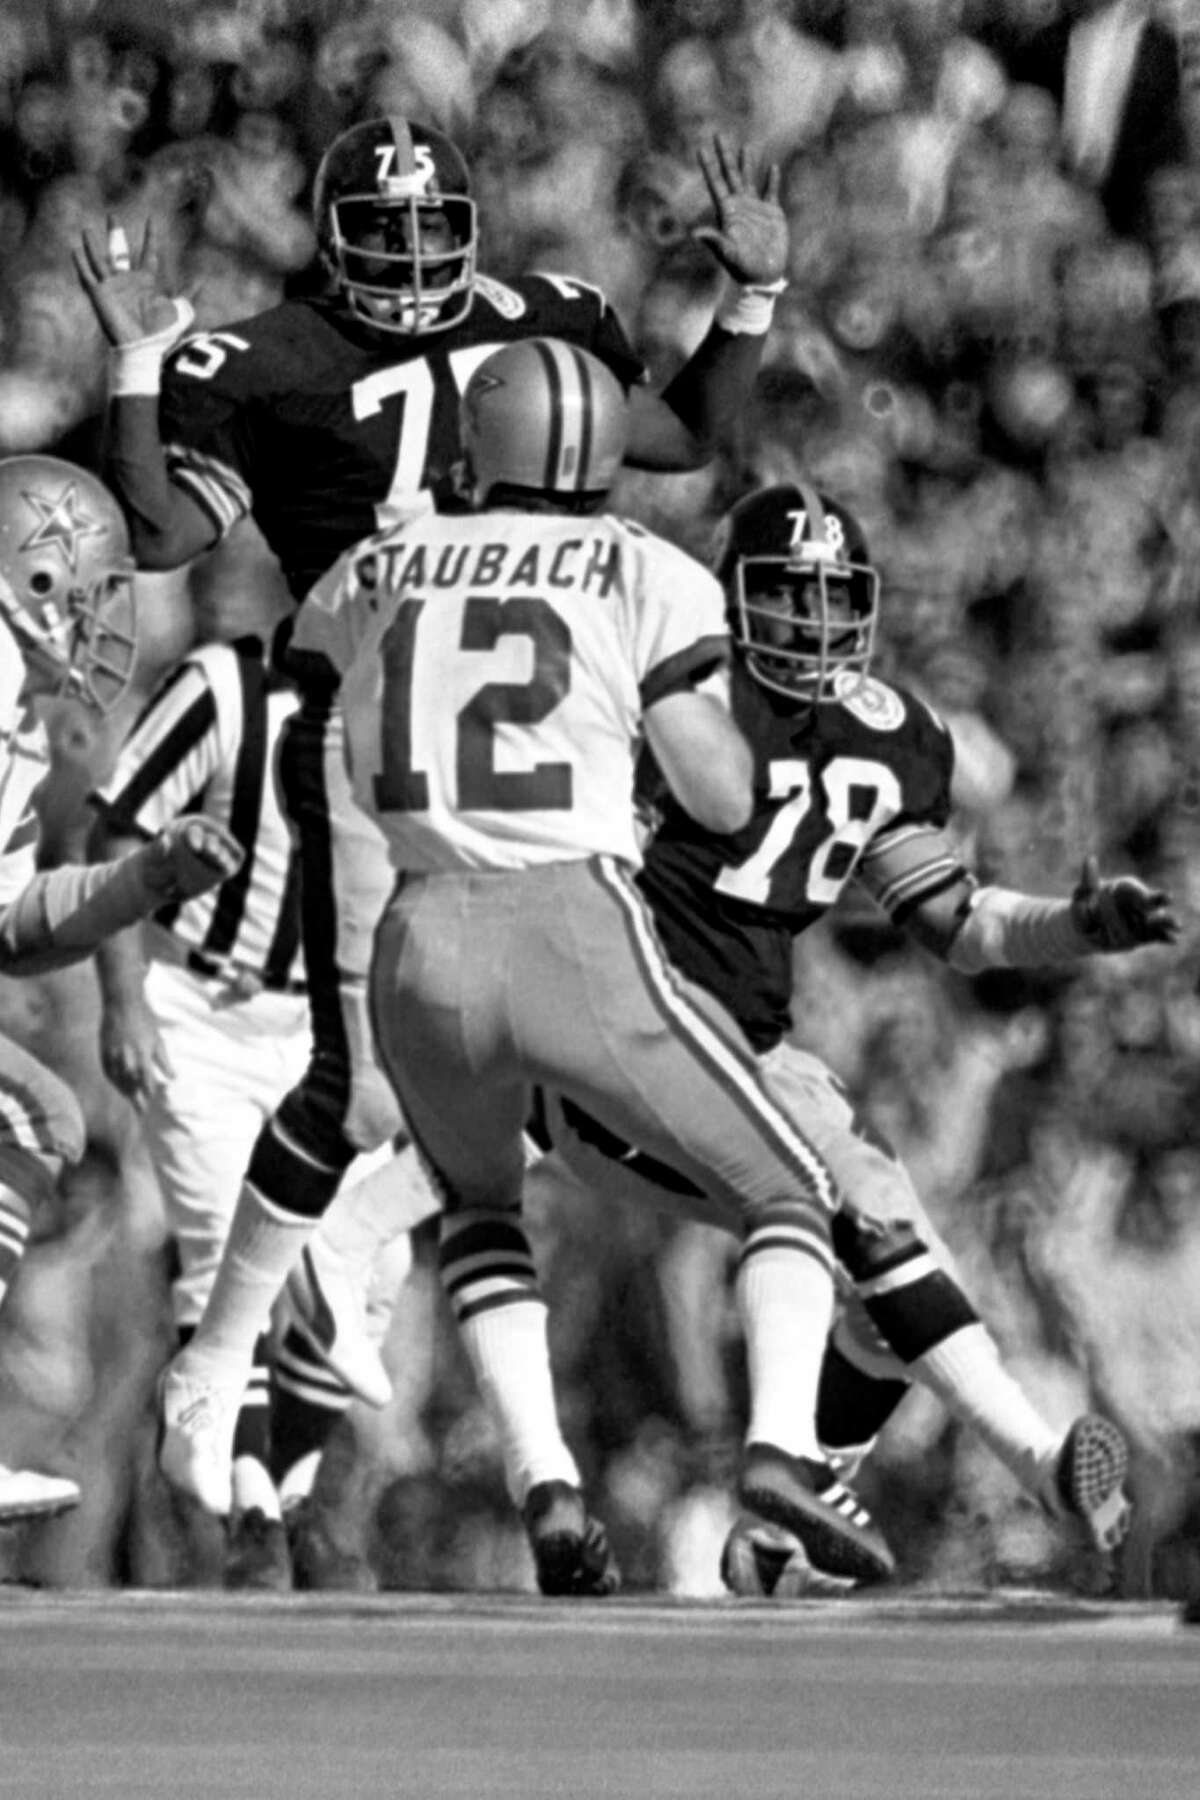 MIAMI, FL - JANUARY 18, 1976: Quarterback Roger Staubach #12 of Dallas Cowboys runs out of the pressure of defensive lineman Dwight White #78, and Joe Greene #75 of the Pittsburgh Steelers during Super Bowl X on January 18, 1976 at the Orange Bowl in Miami, Florida. The Steelers beat the Cowboys, 21-17 to win the professional football World Championship.19760118-JS-1976 Kidwiler Collection/Diamond Images